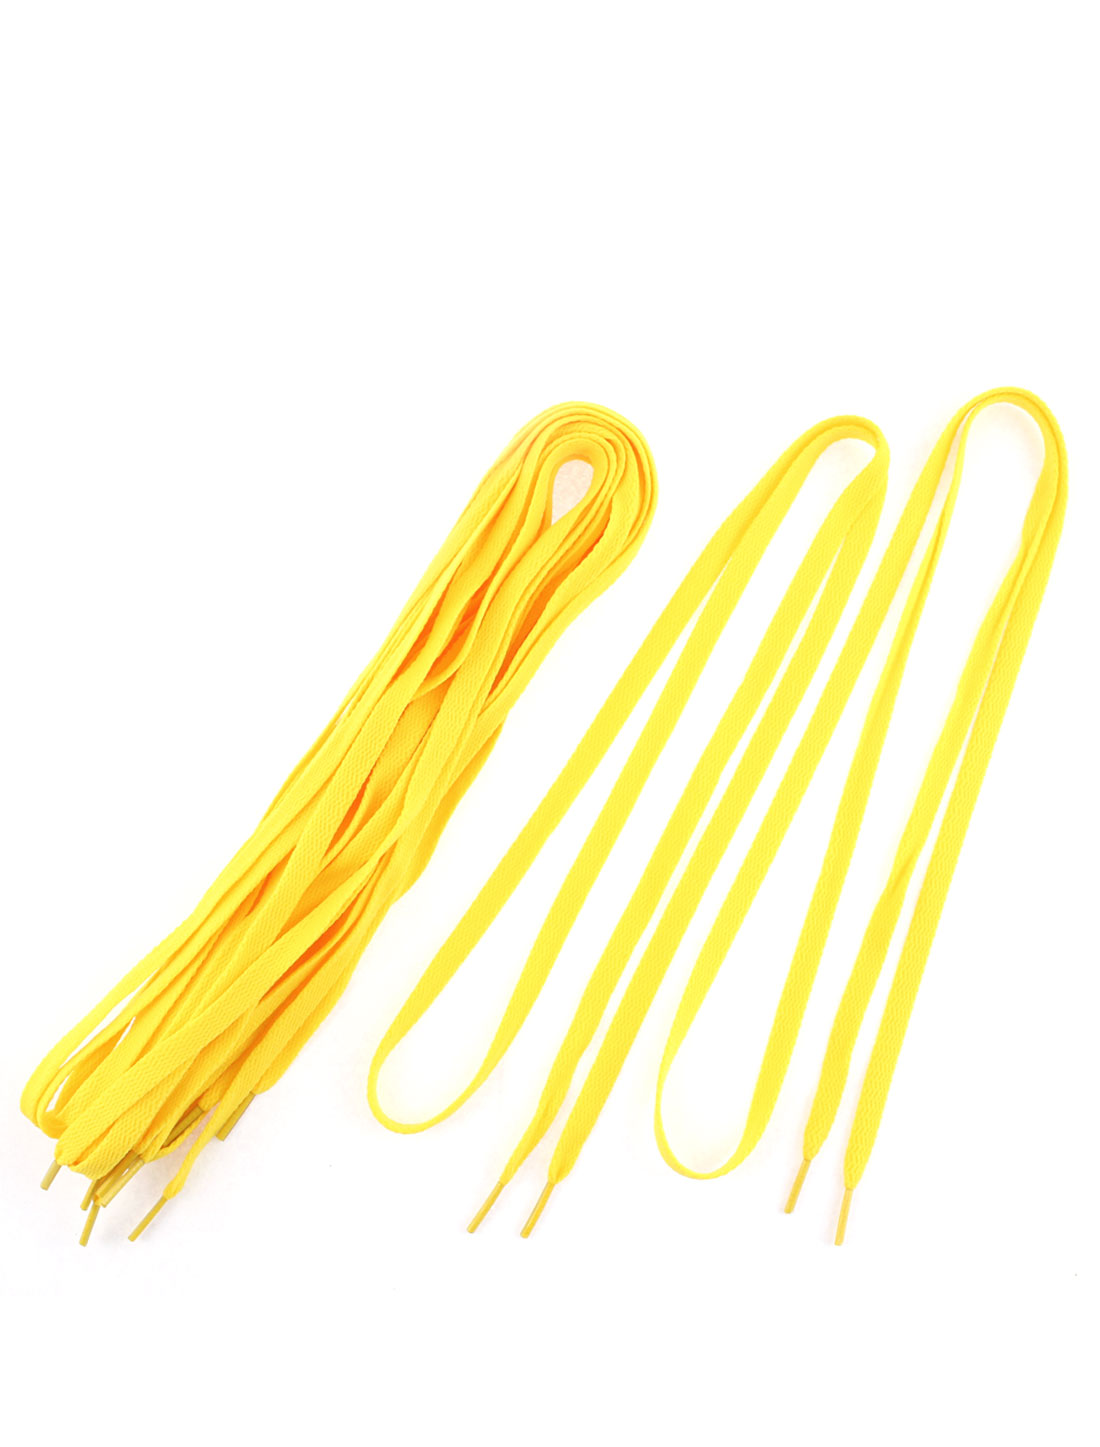 "Athletic Sports Sneaker Flat Shoelace Strings Yellow 43"" Length 5 Pairs"